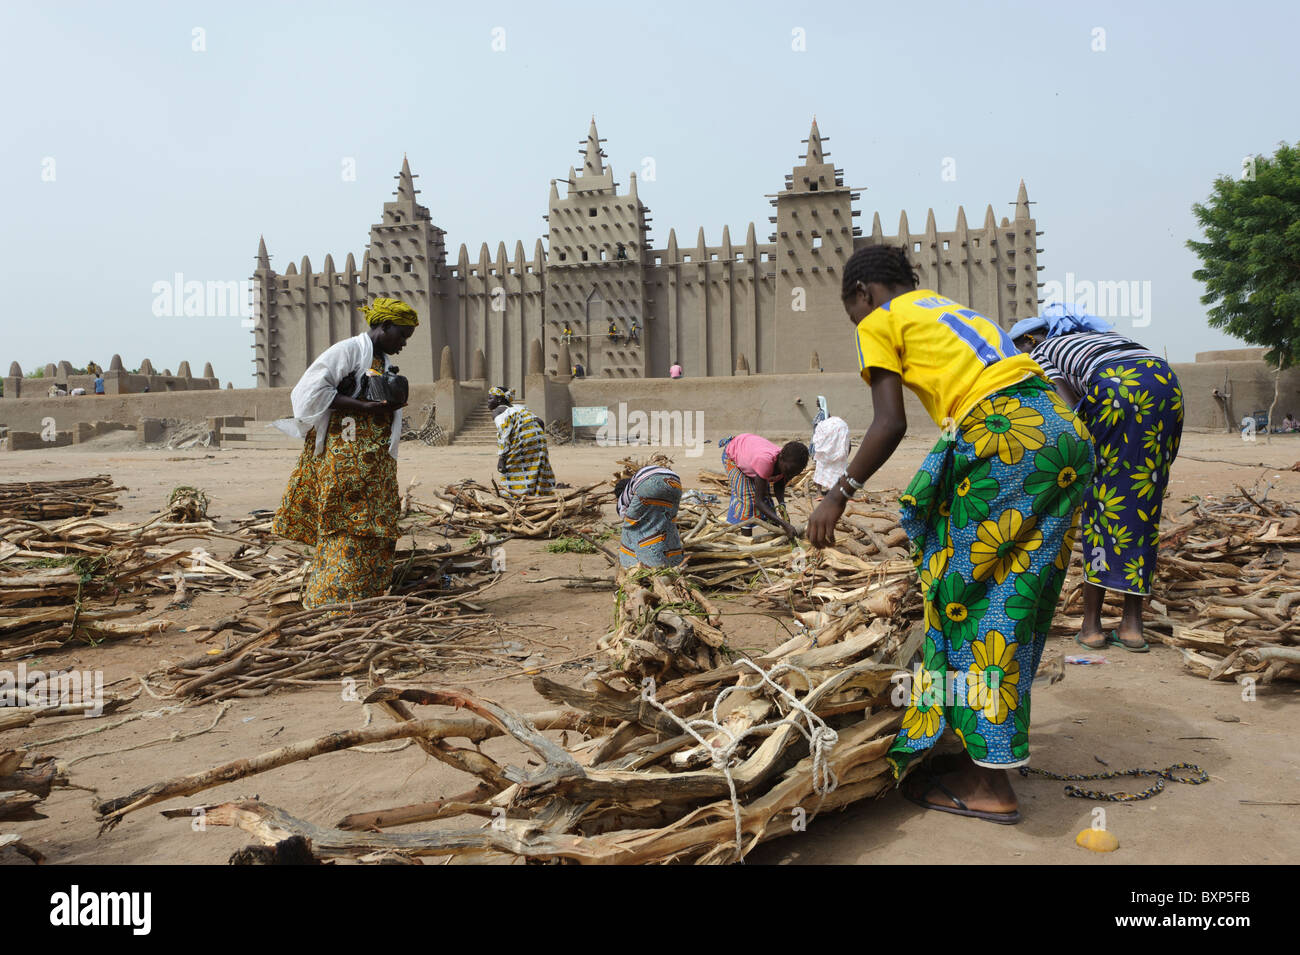 Fulani women gathering fire wood in front of the Great  Mosque of Djenné, Mali - Stock Image